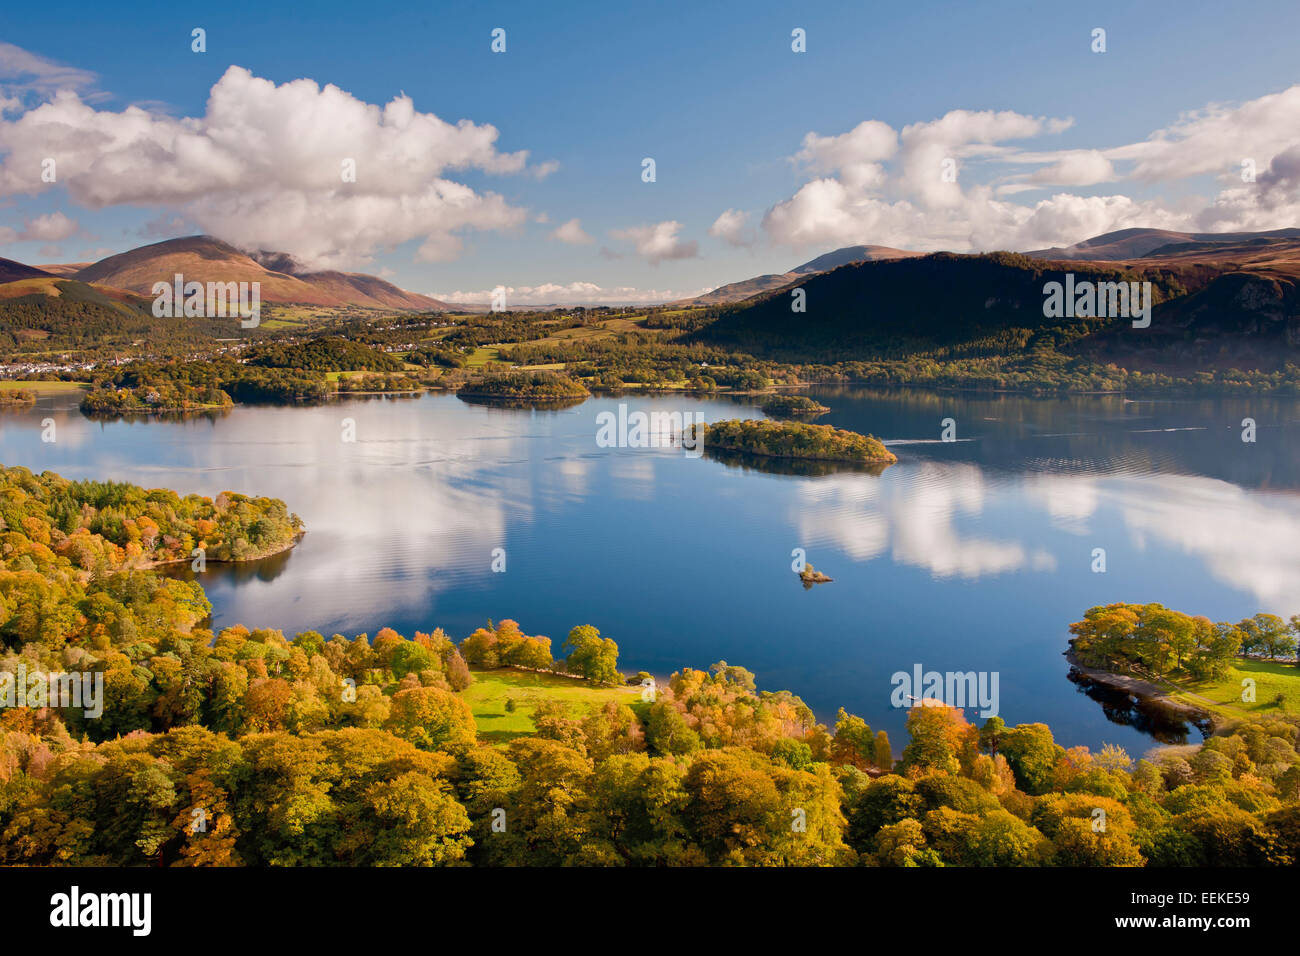 A view from Catbells over Derwentwater. - Stock Image